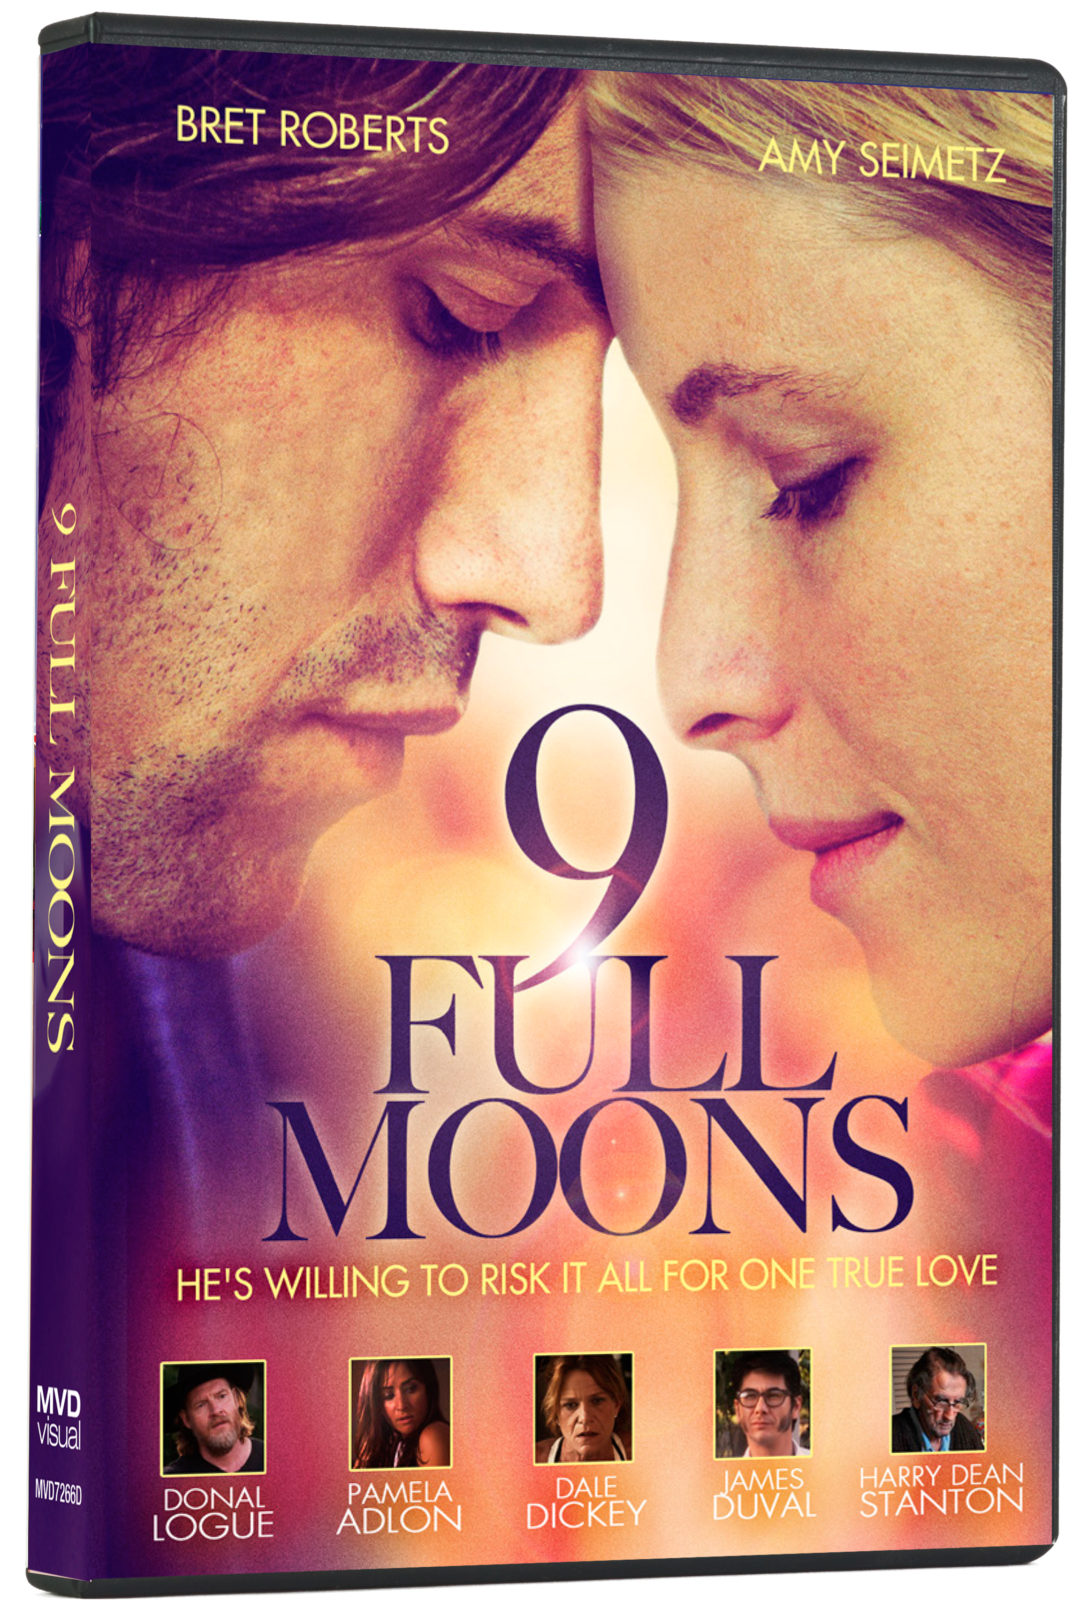 9 Full Moons DVD